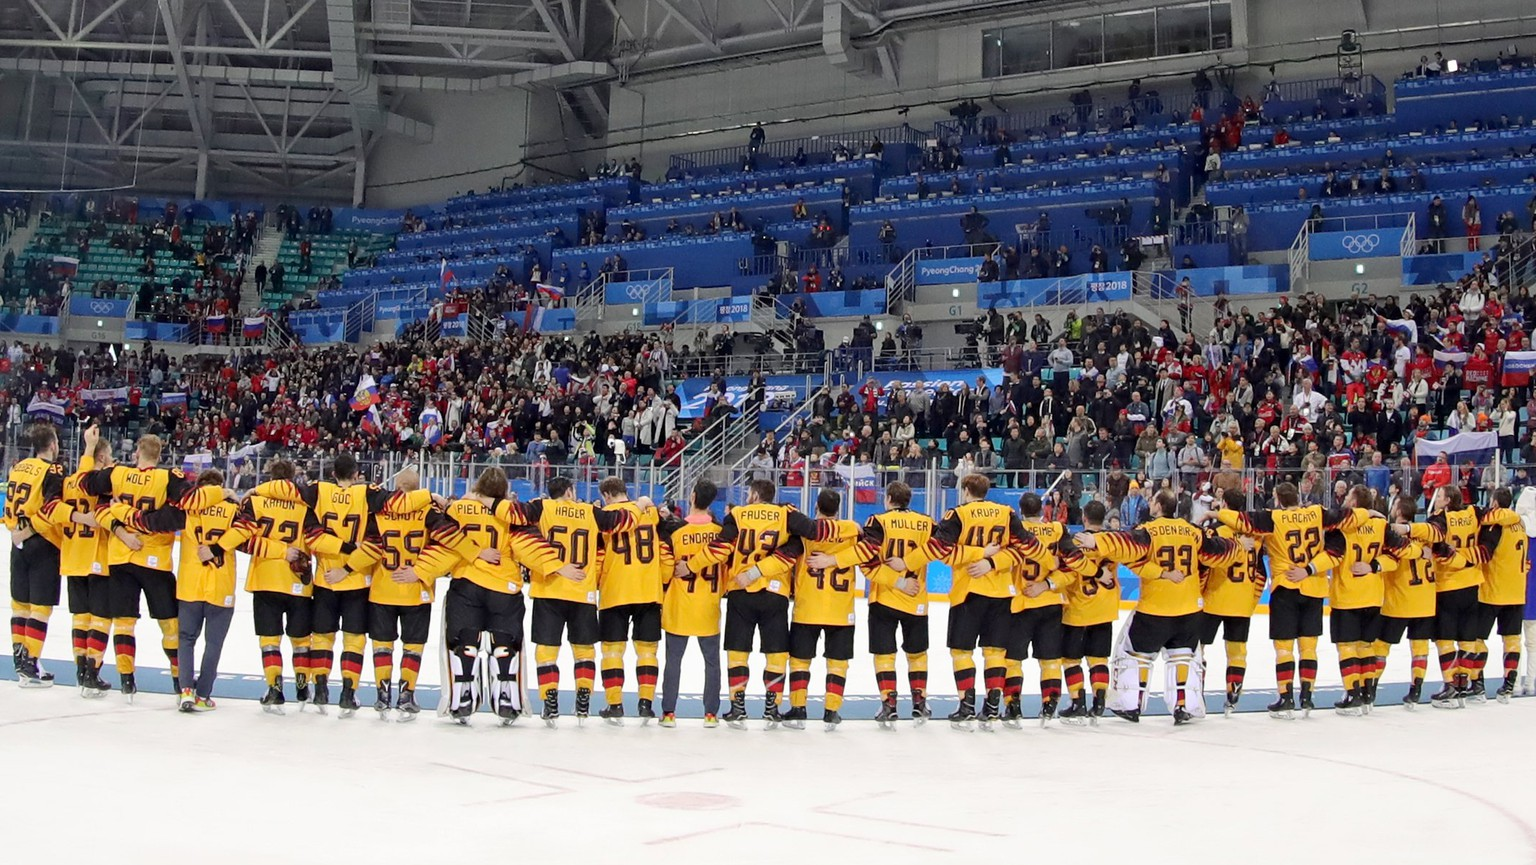 epa06563408 Silver medalists of Team Germany stand in line during the medal ceremony after the Men's Ice Hockey Gold Medal Game between the Olympic Athlete from Russia (OAR) and Germany at the Gangneung Hockey Centre during the PyeongChang 2018 Winter Olympic Games, in Gangneung, South Korea, 25 February 2018.  EPA/SRDJAN SUKI